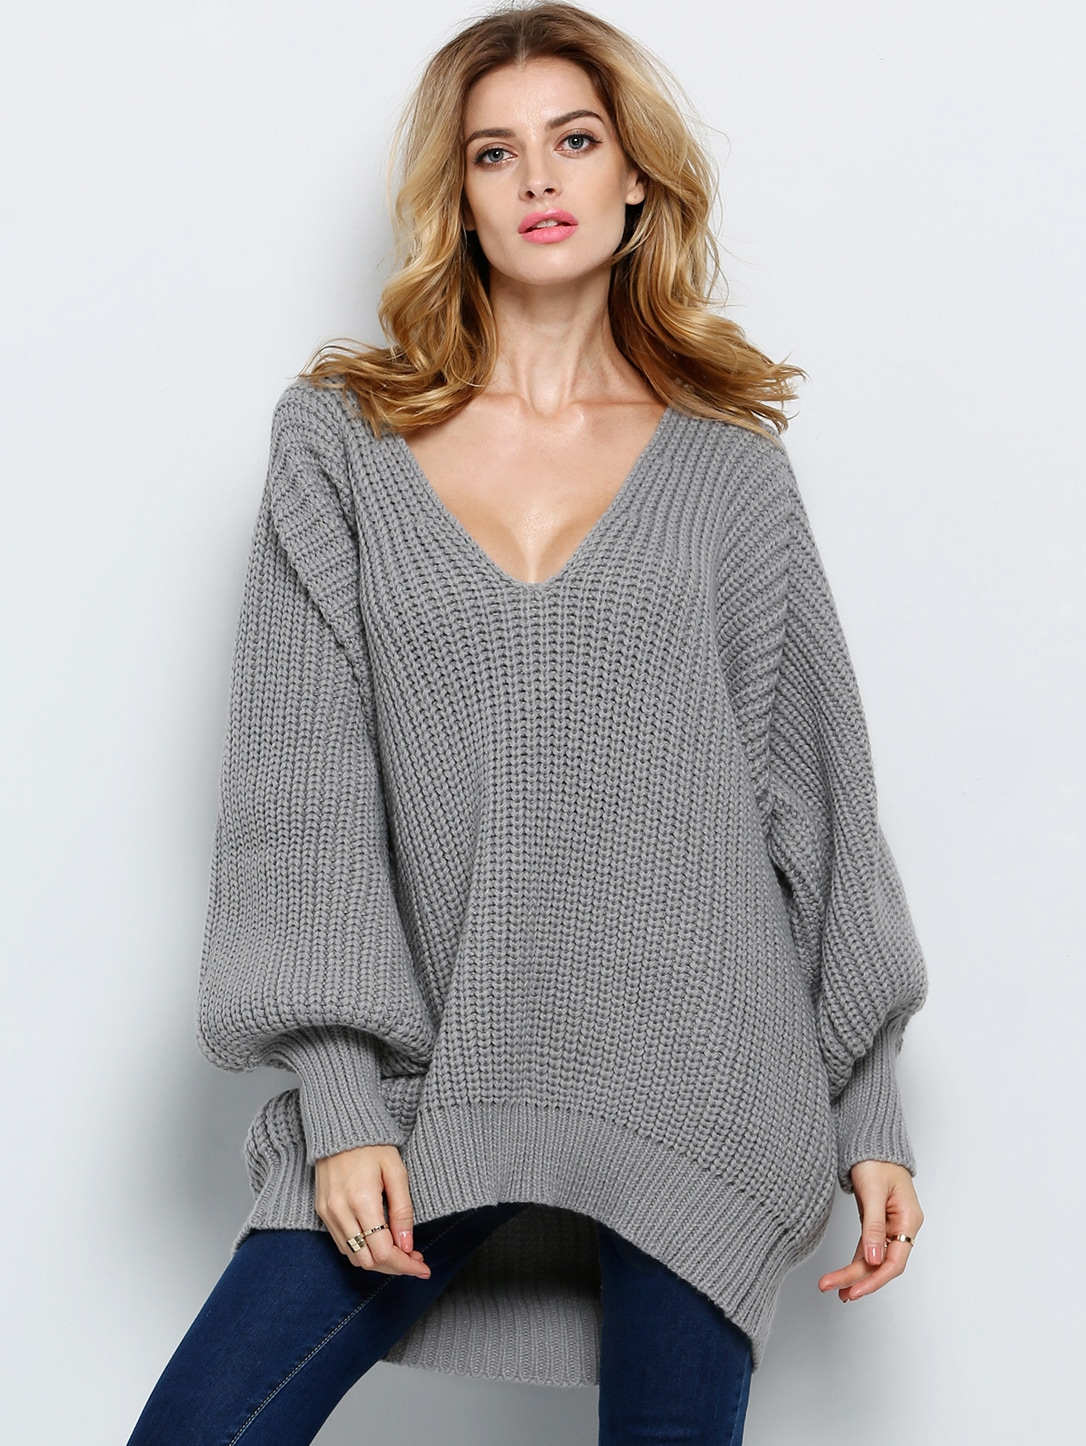 Loose Knit Cropped Jumper - Just $6